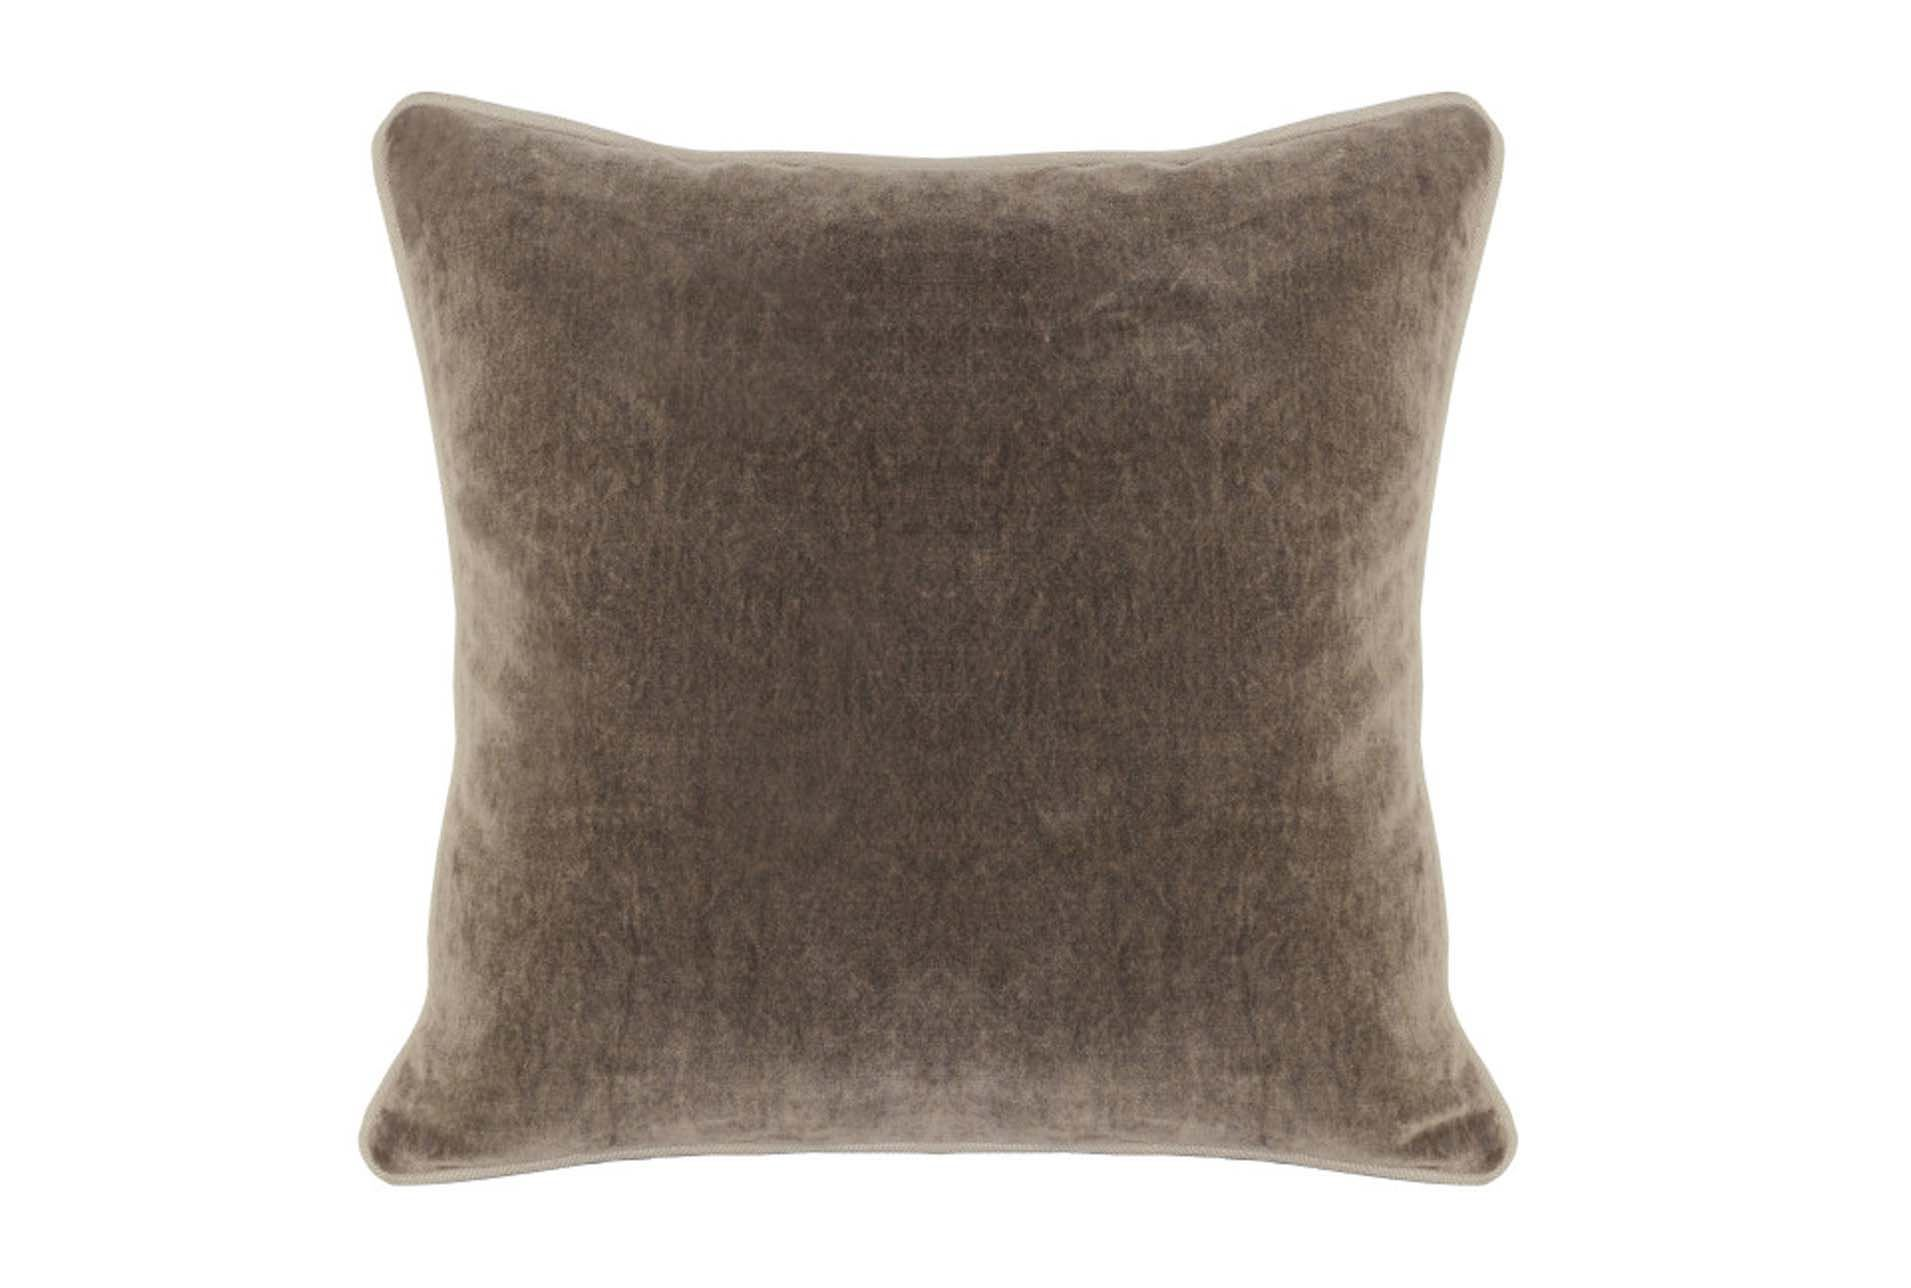 Decorative Pillows Living Spaces : Accent Pillow-Mushroom Washed Velvet 18X18 - Living Spaces